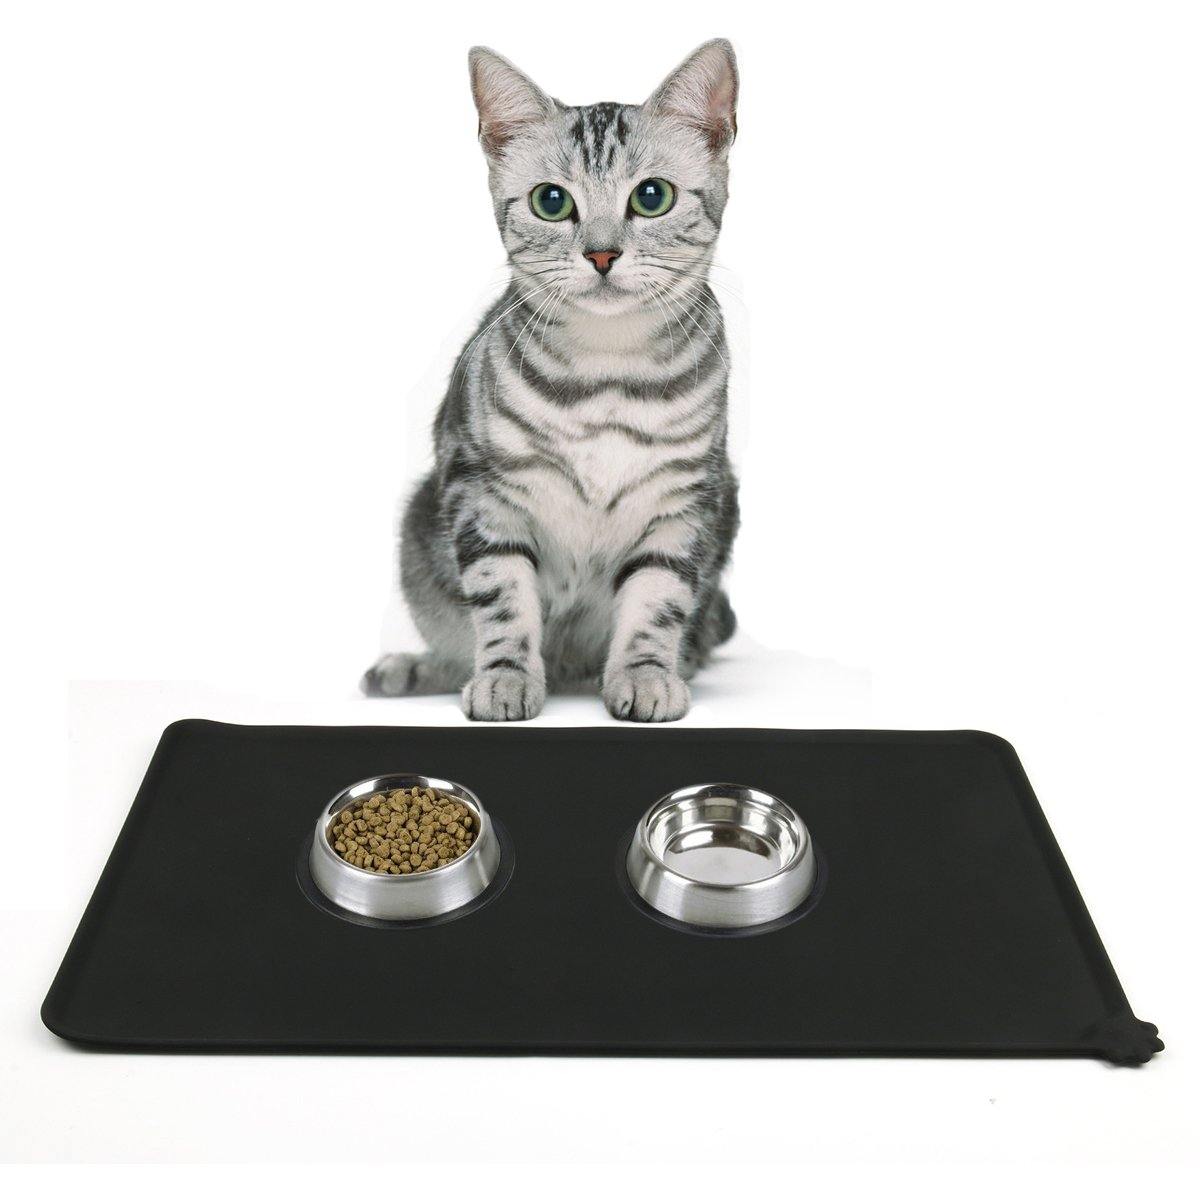 Cusfull Pet Food Mat - Premium FDA Grade Silicone Feeding Mat for Dogs and Cats, Anti-Slip and Washable 47x30cm (Grey)